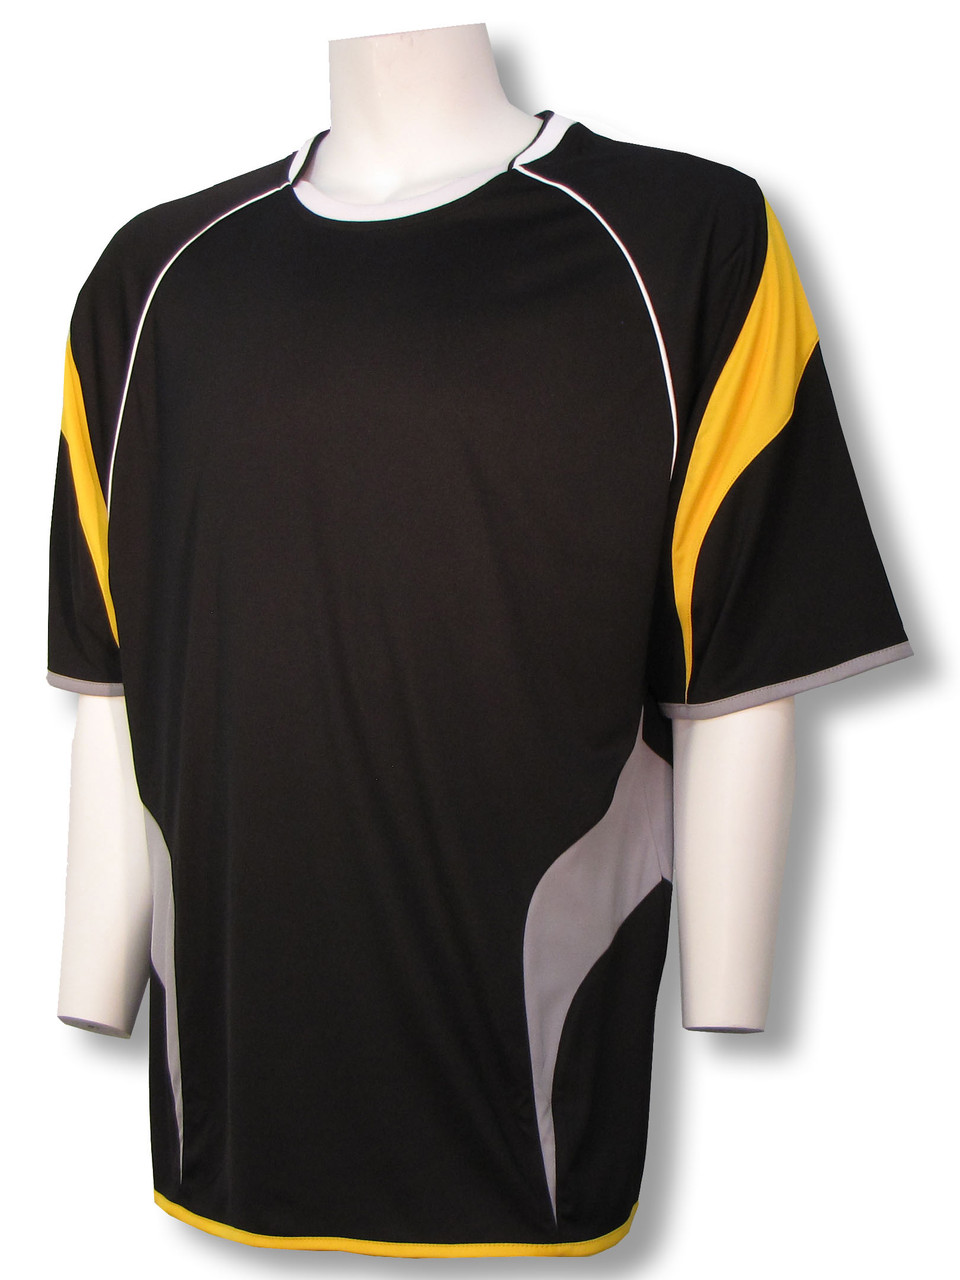 ab37e4999 Columbus Soccer Jersey - Youth and Adult Soccer Uniforms